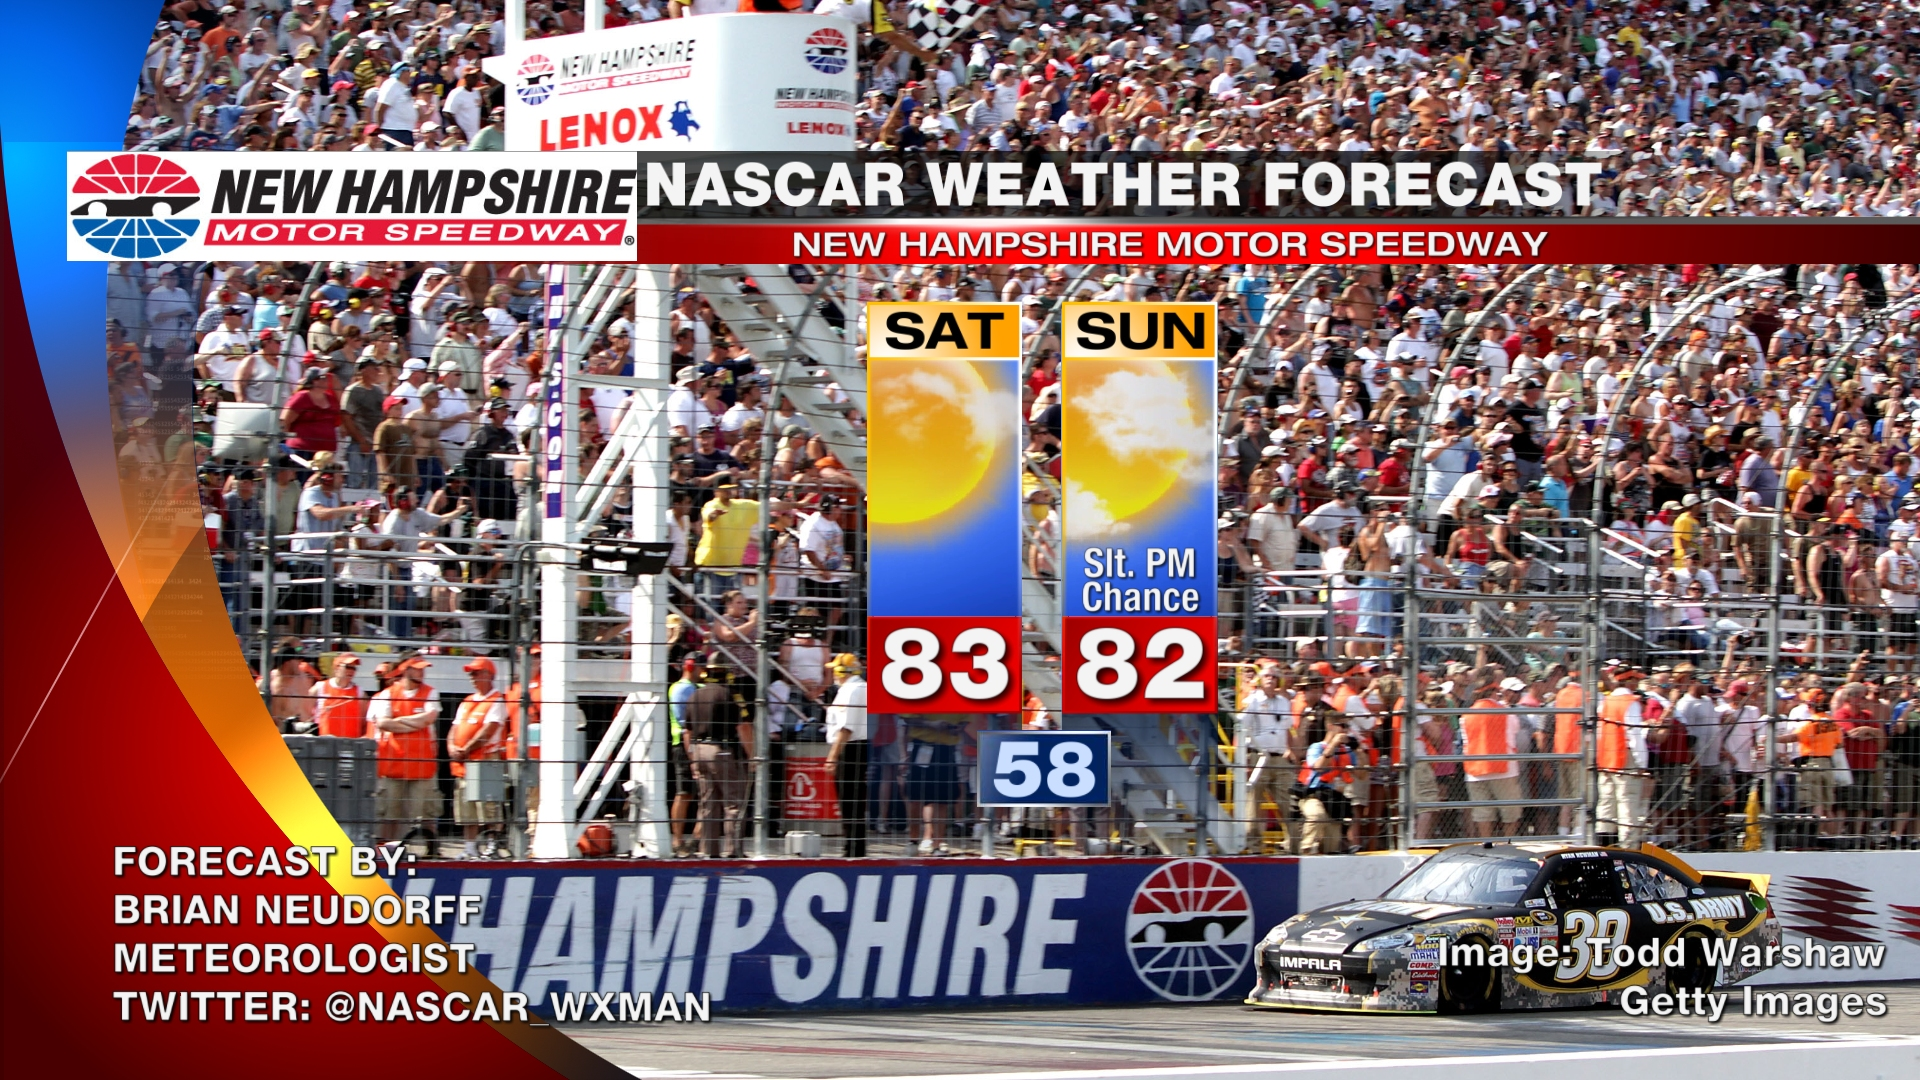 2014 NASCAR At New Hampshire weather forecast: Could we see rain for another race?